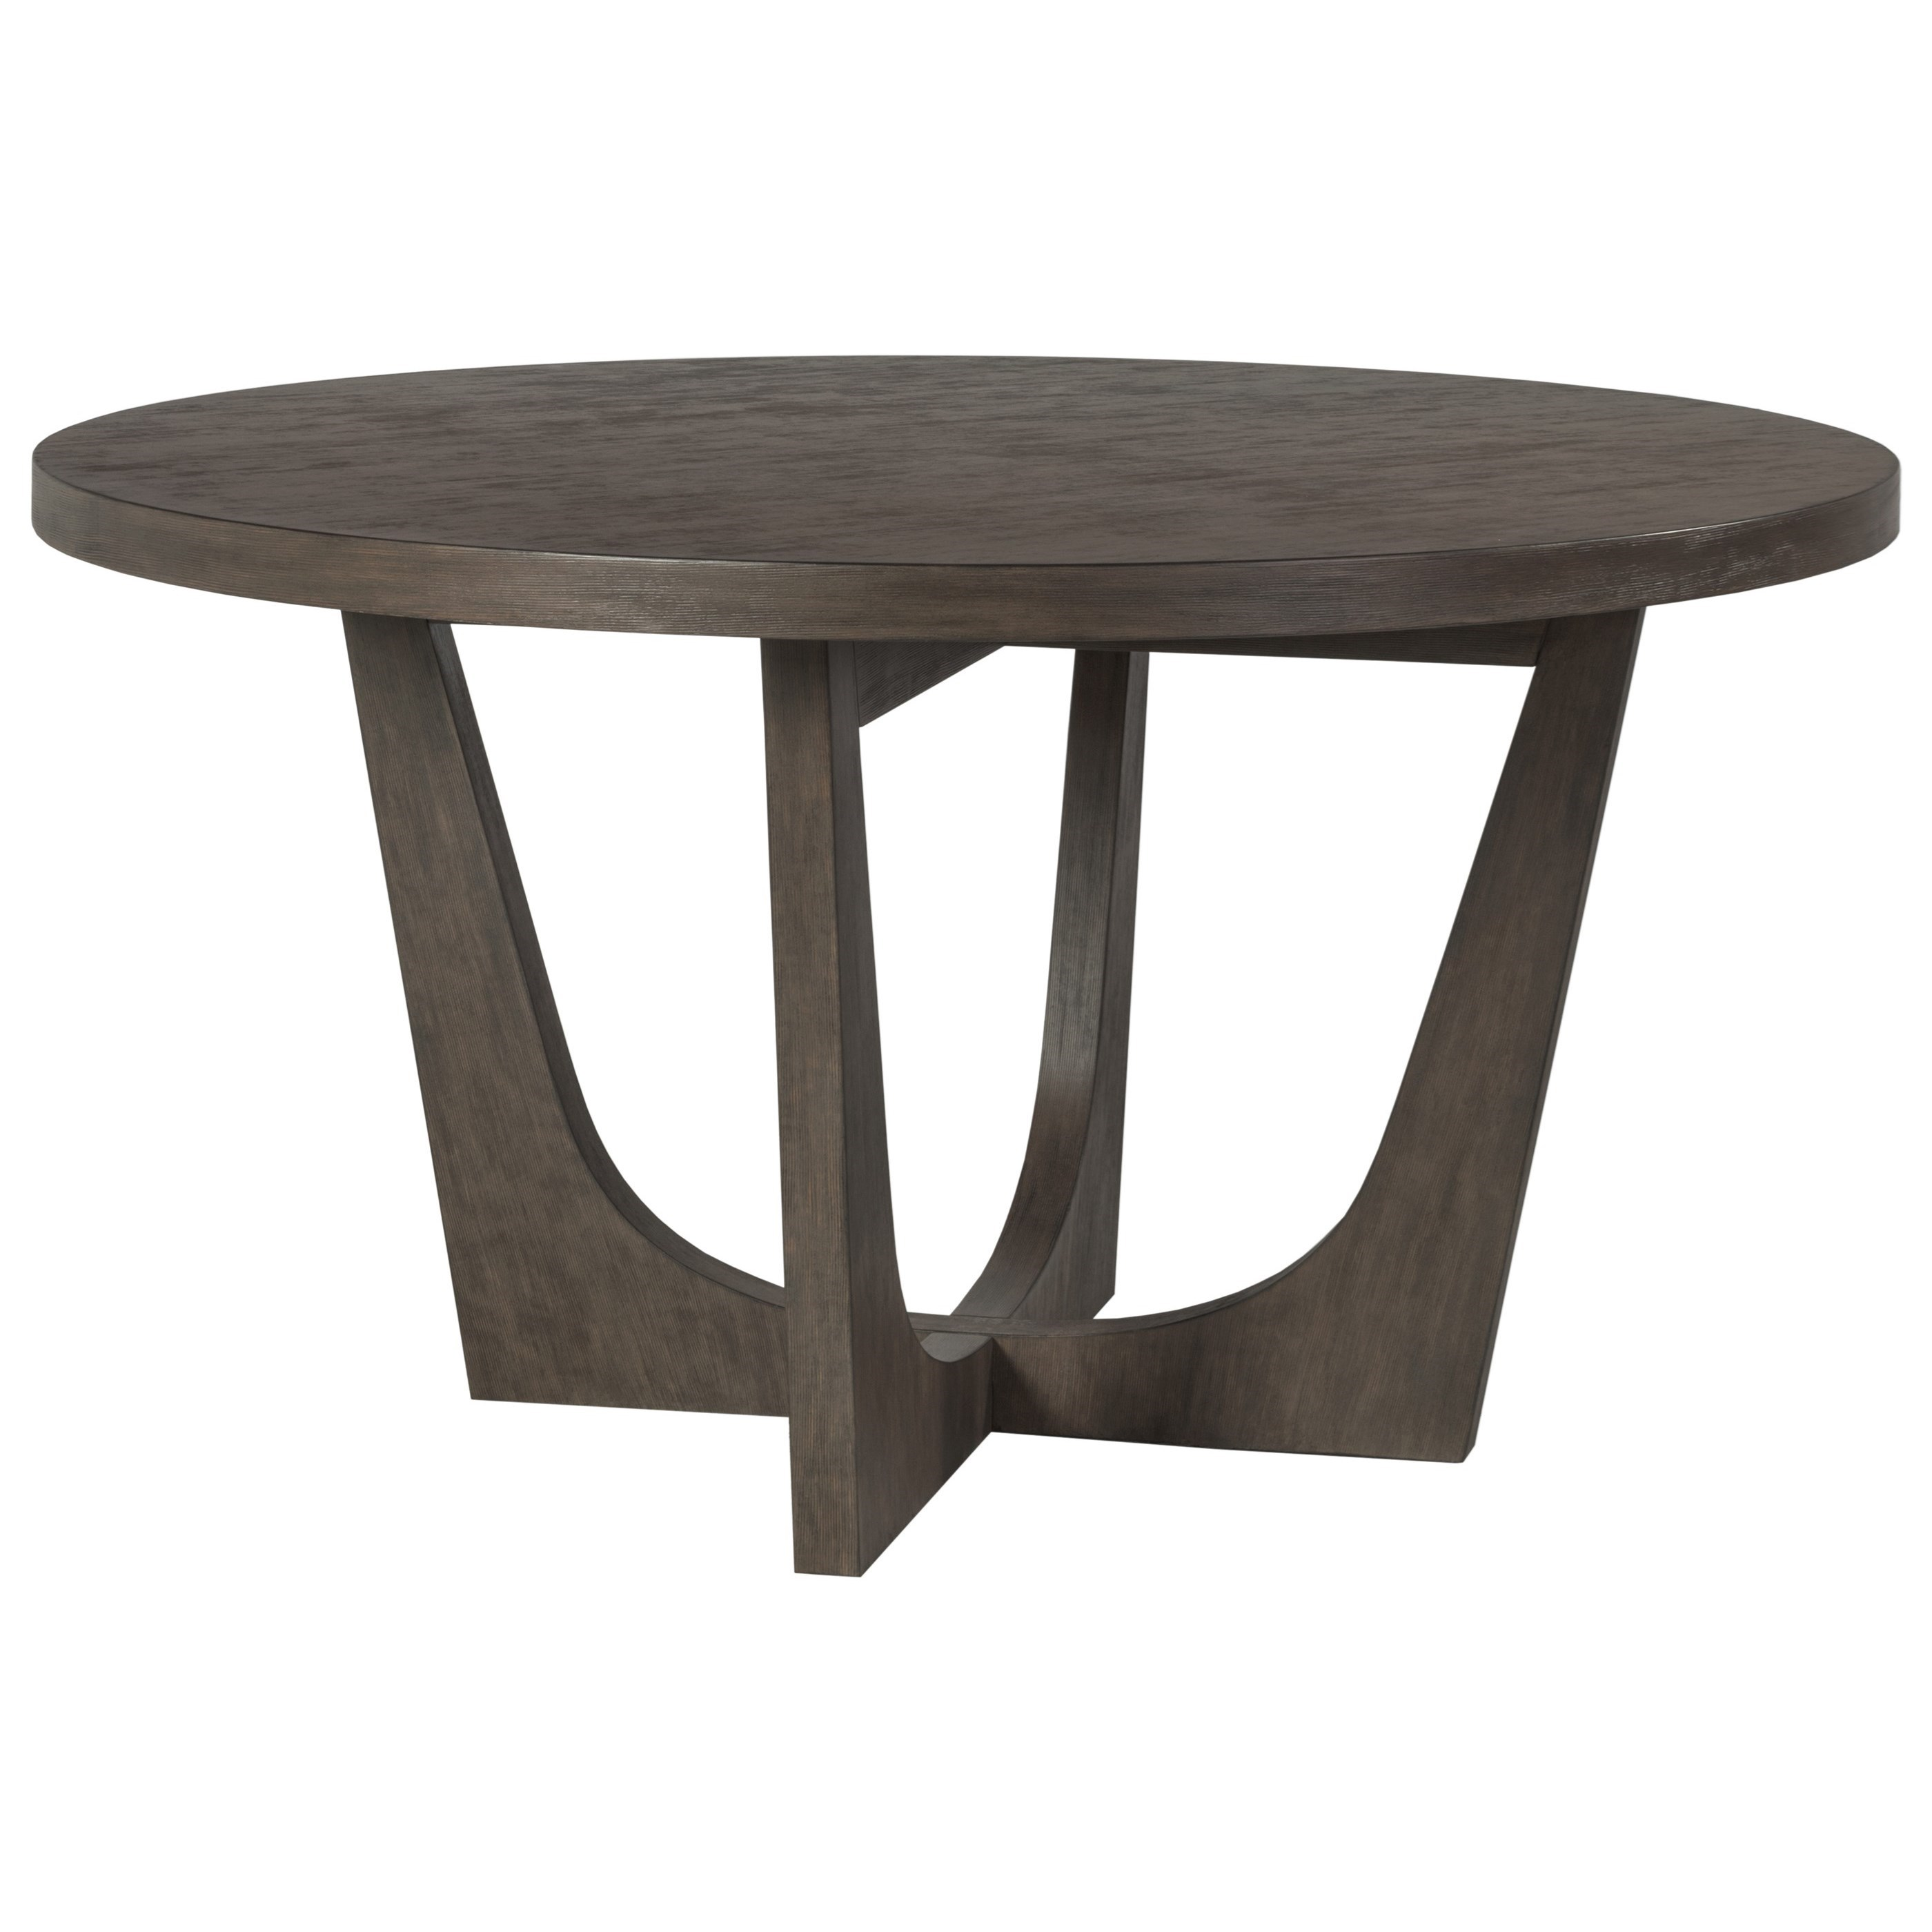 Cohesion Brio Round Dining Table by Artistica at Baer's Furniture